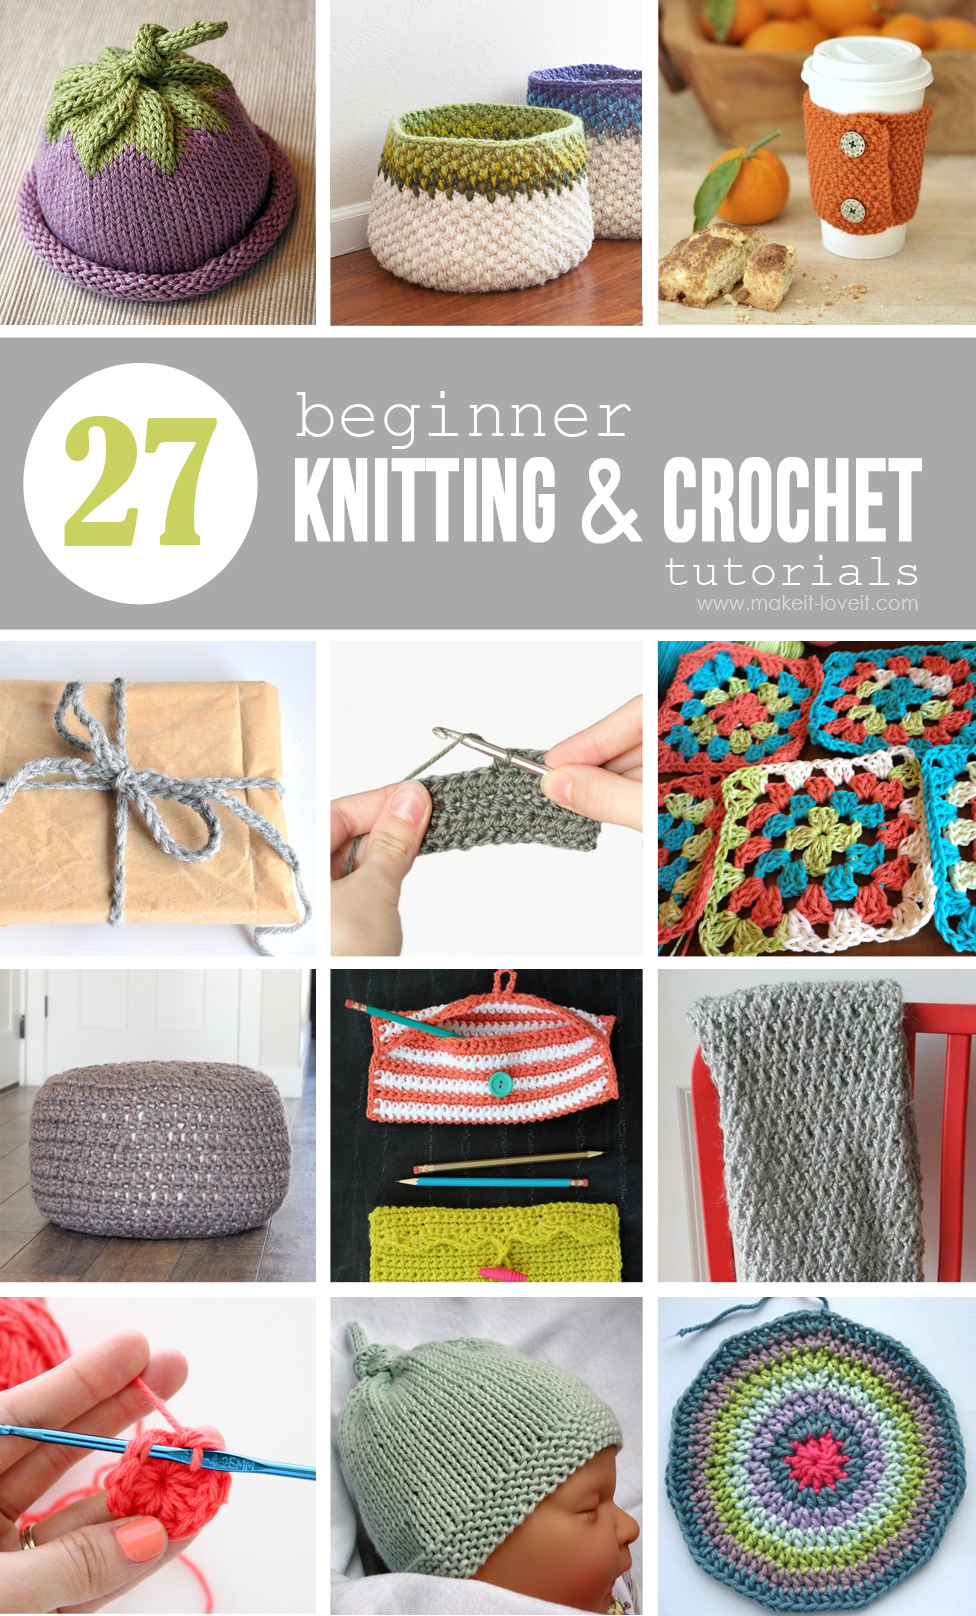 Crocheting Lessons For Beginners : 27 Beginner Knitting and Crochet Tutorials via Make It and Love It